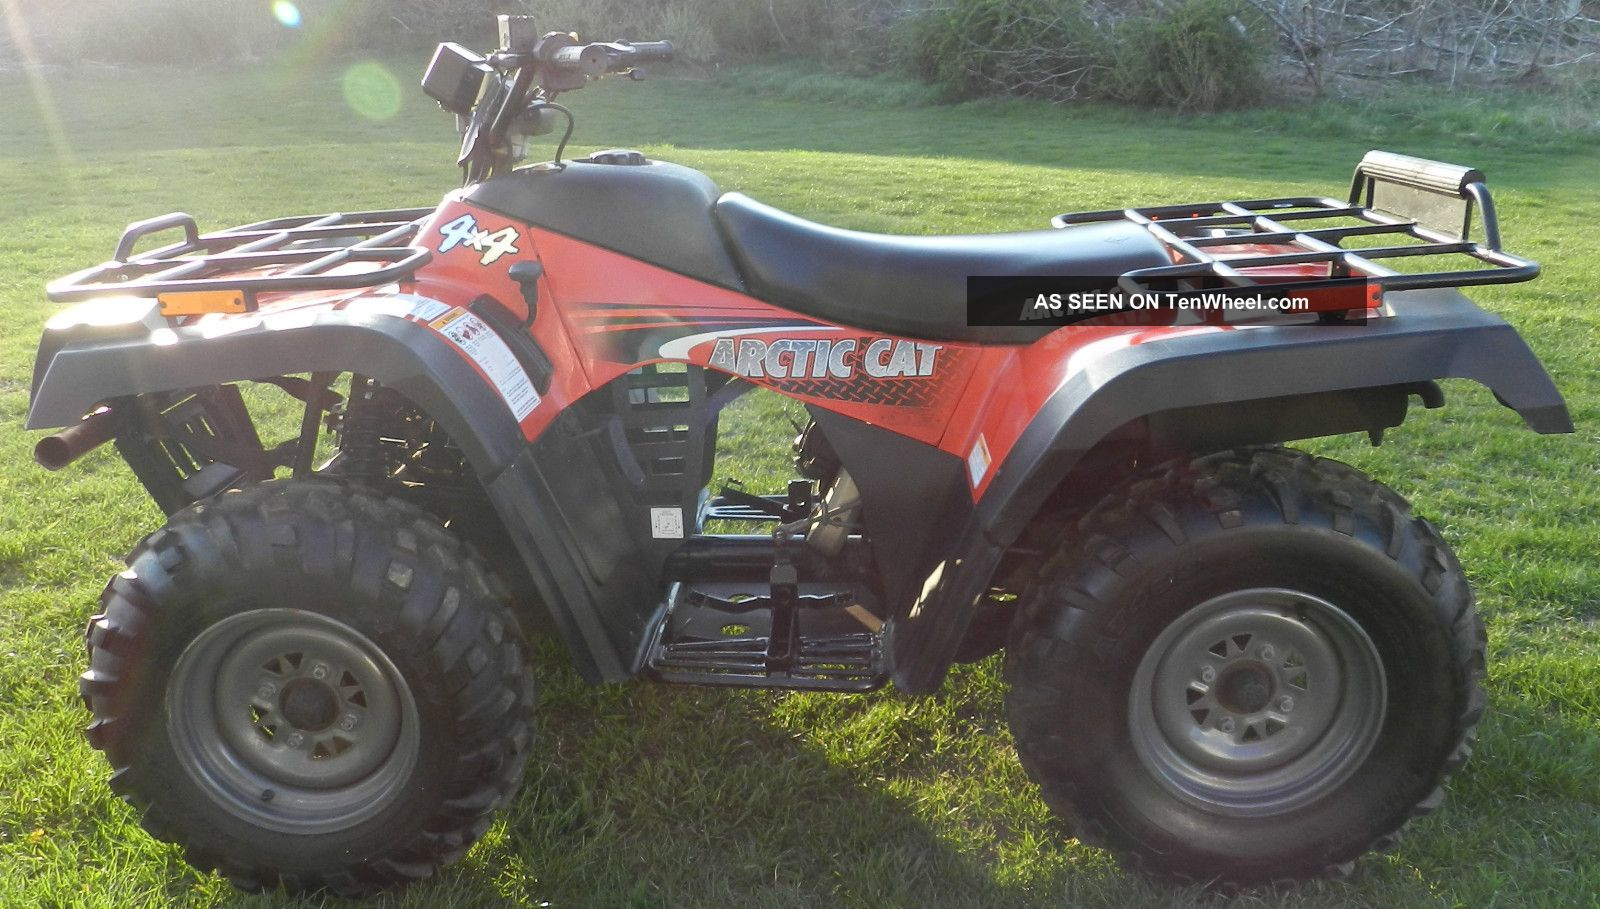 Watch likewise Honda Atv 350 Rancher Engine Diagram together with Watch further 1998 Kawasaki Bayou 300 Wiring Diagram additionally 26354 2002 arctic cat 300. on 1998 arctic cat 300